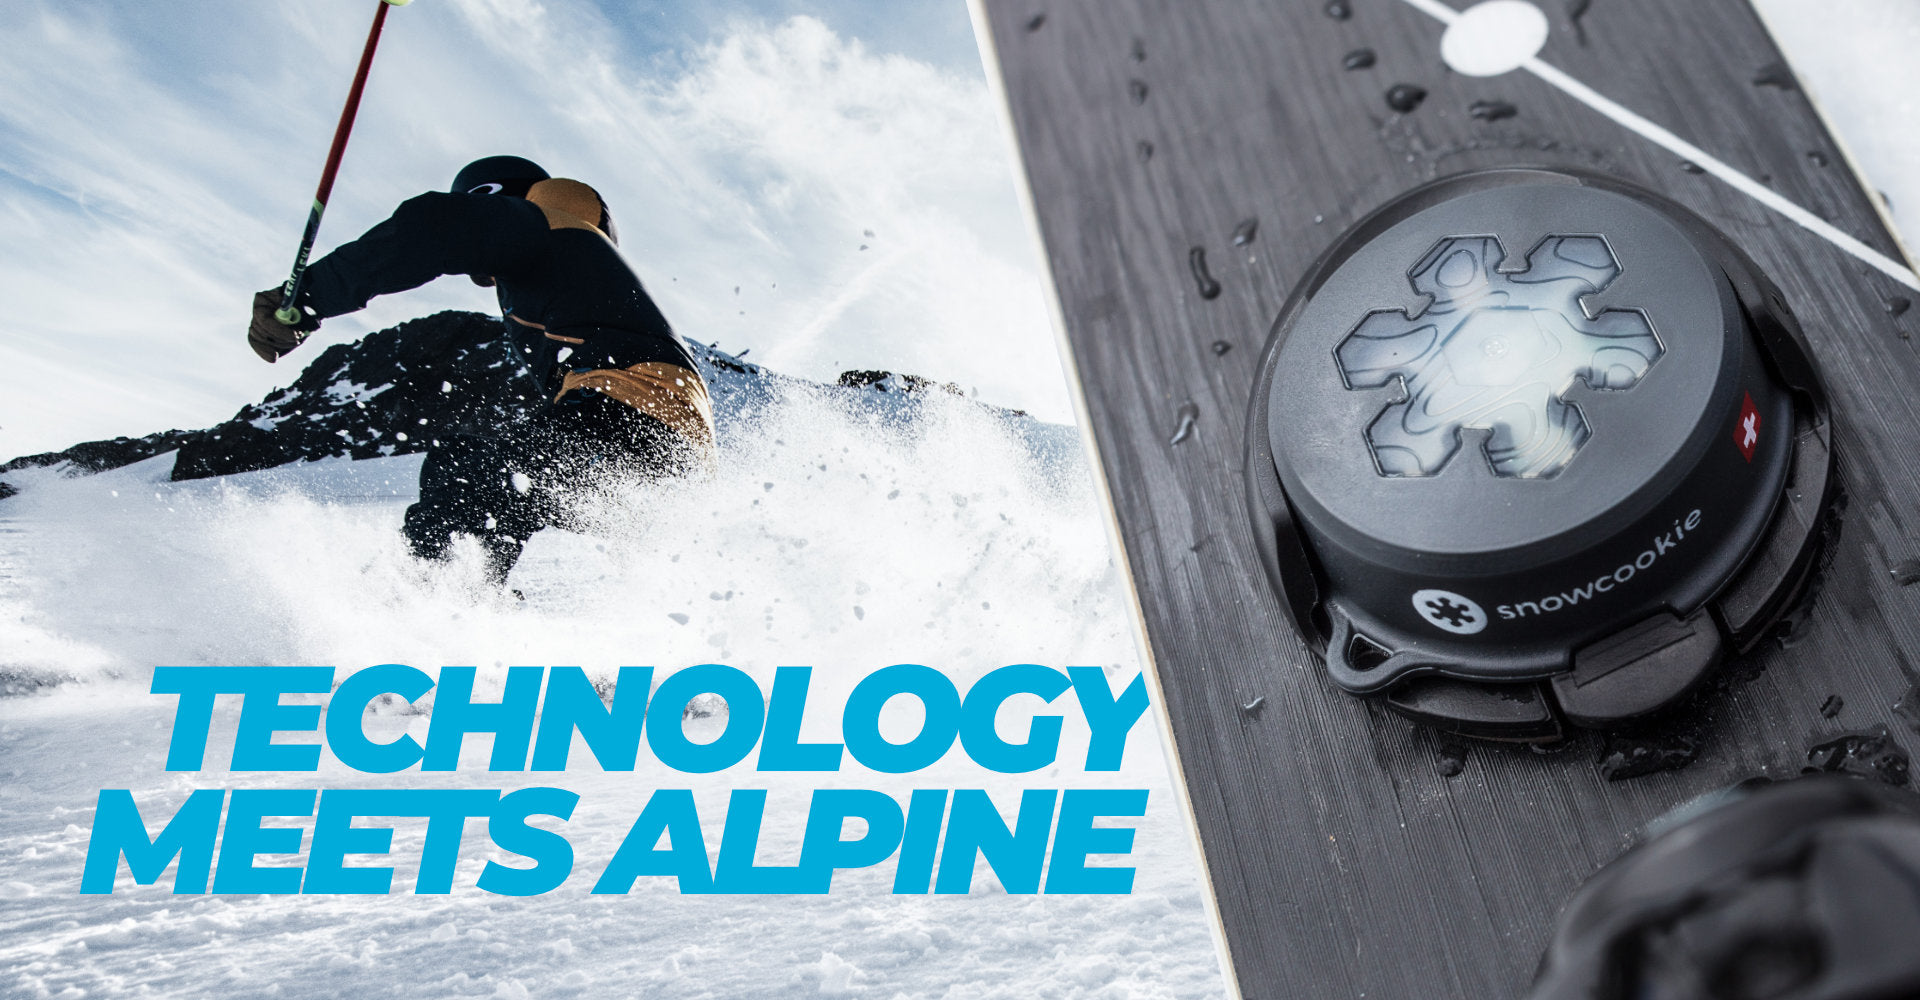 Technology meets alpine